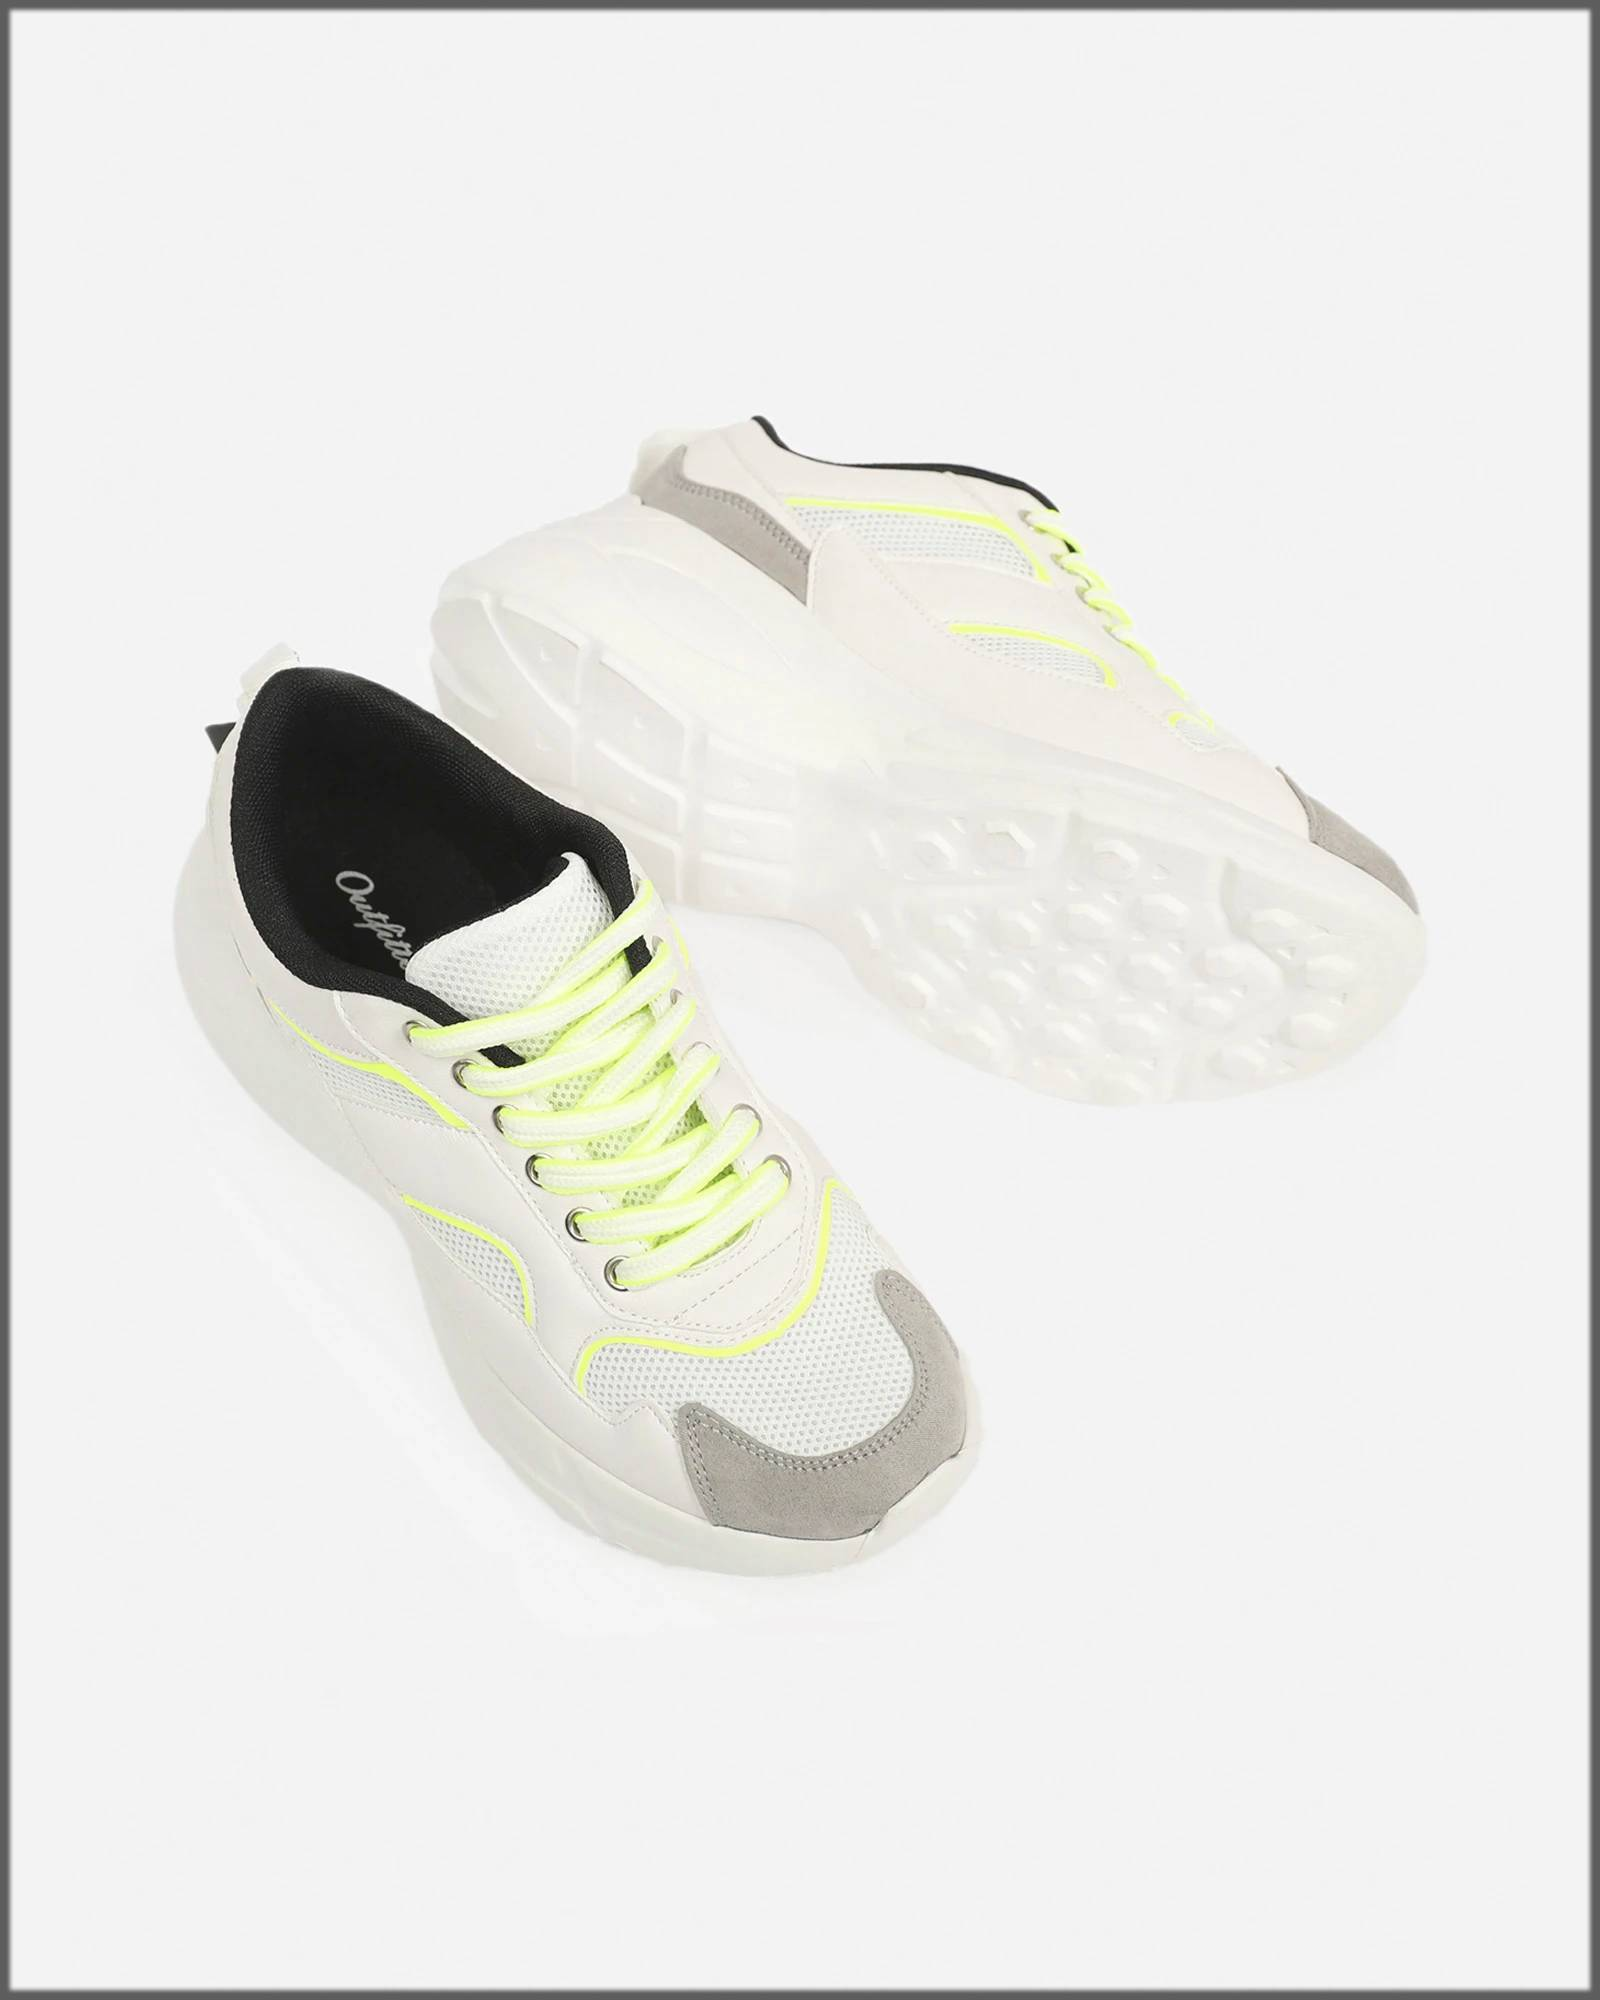 comfortable winter wear jogger shoes by outfitters